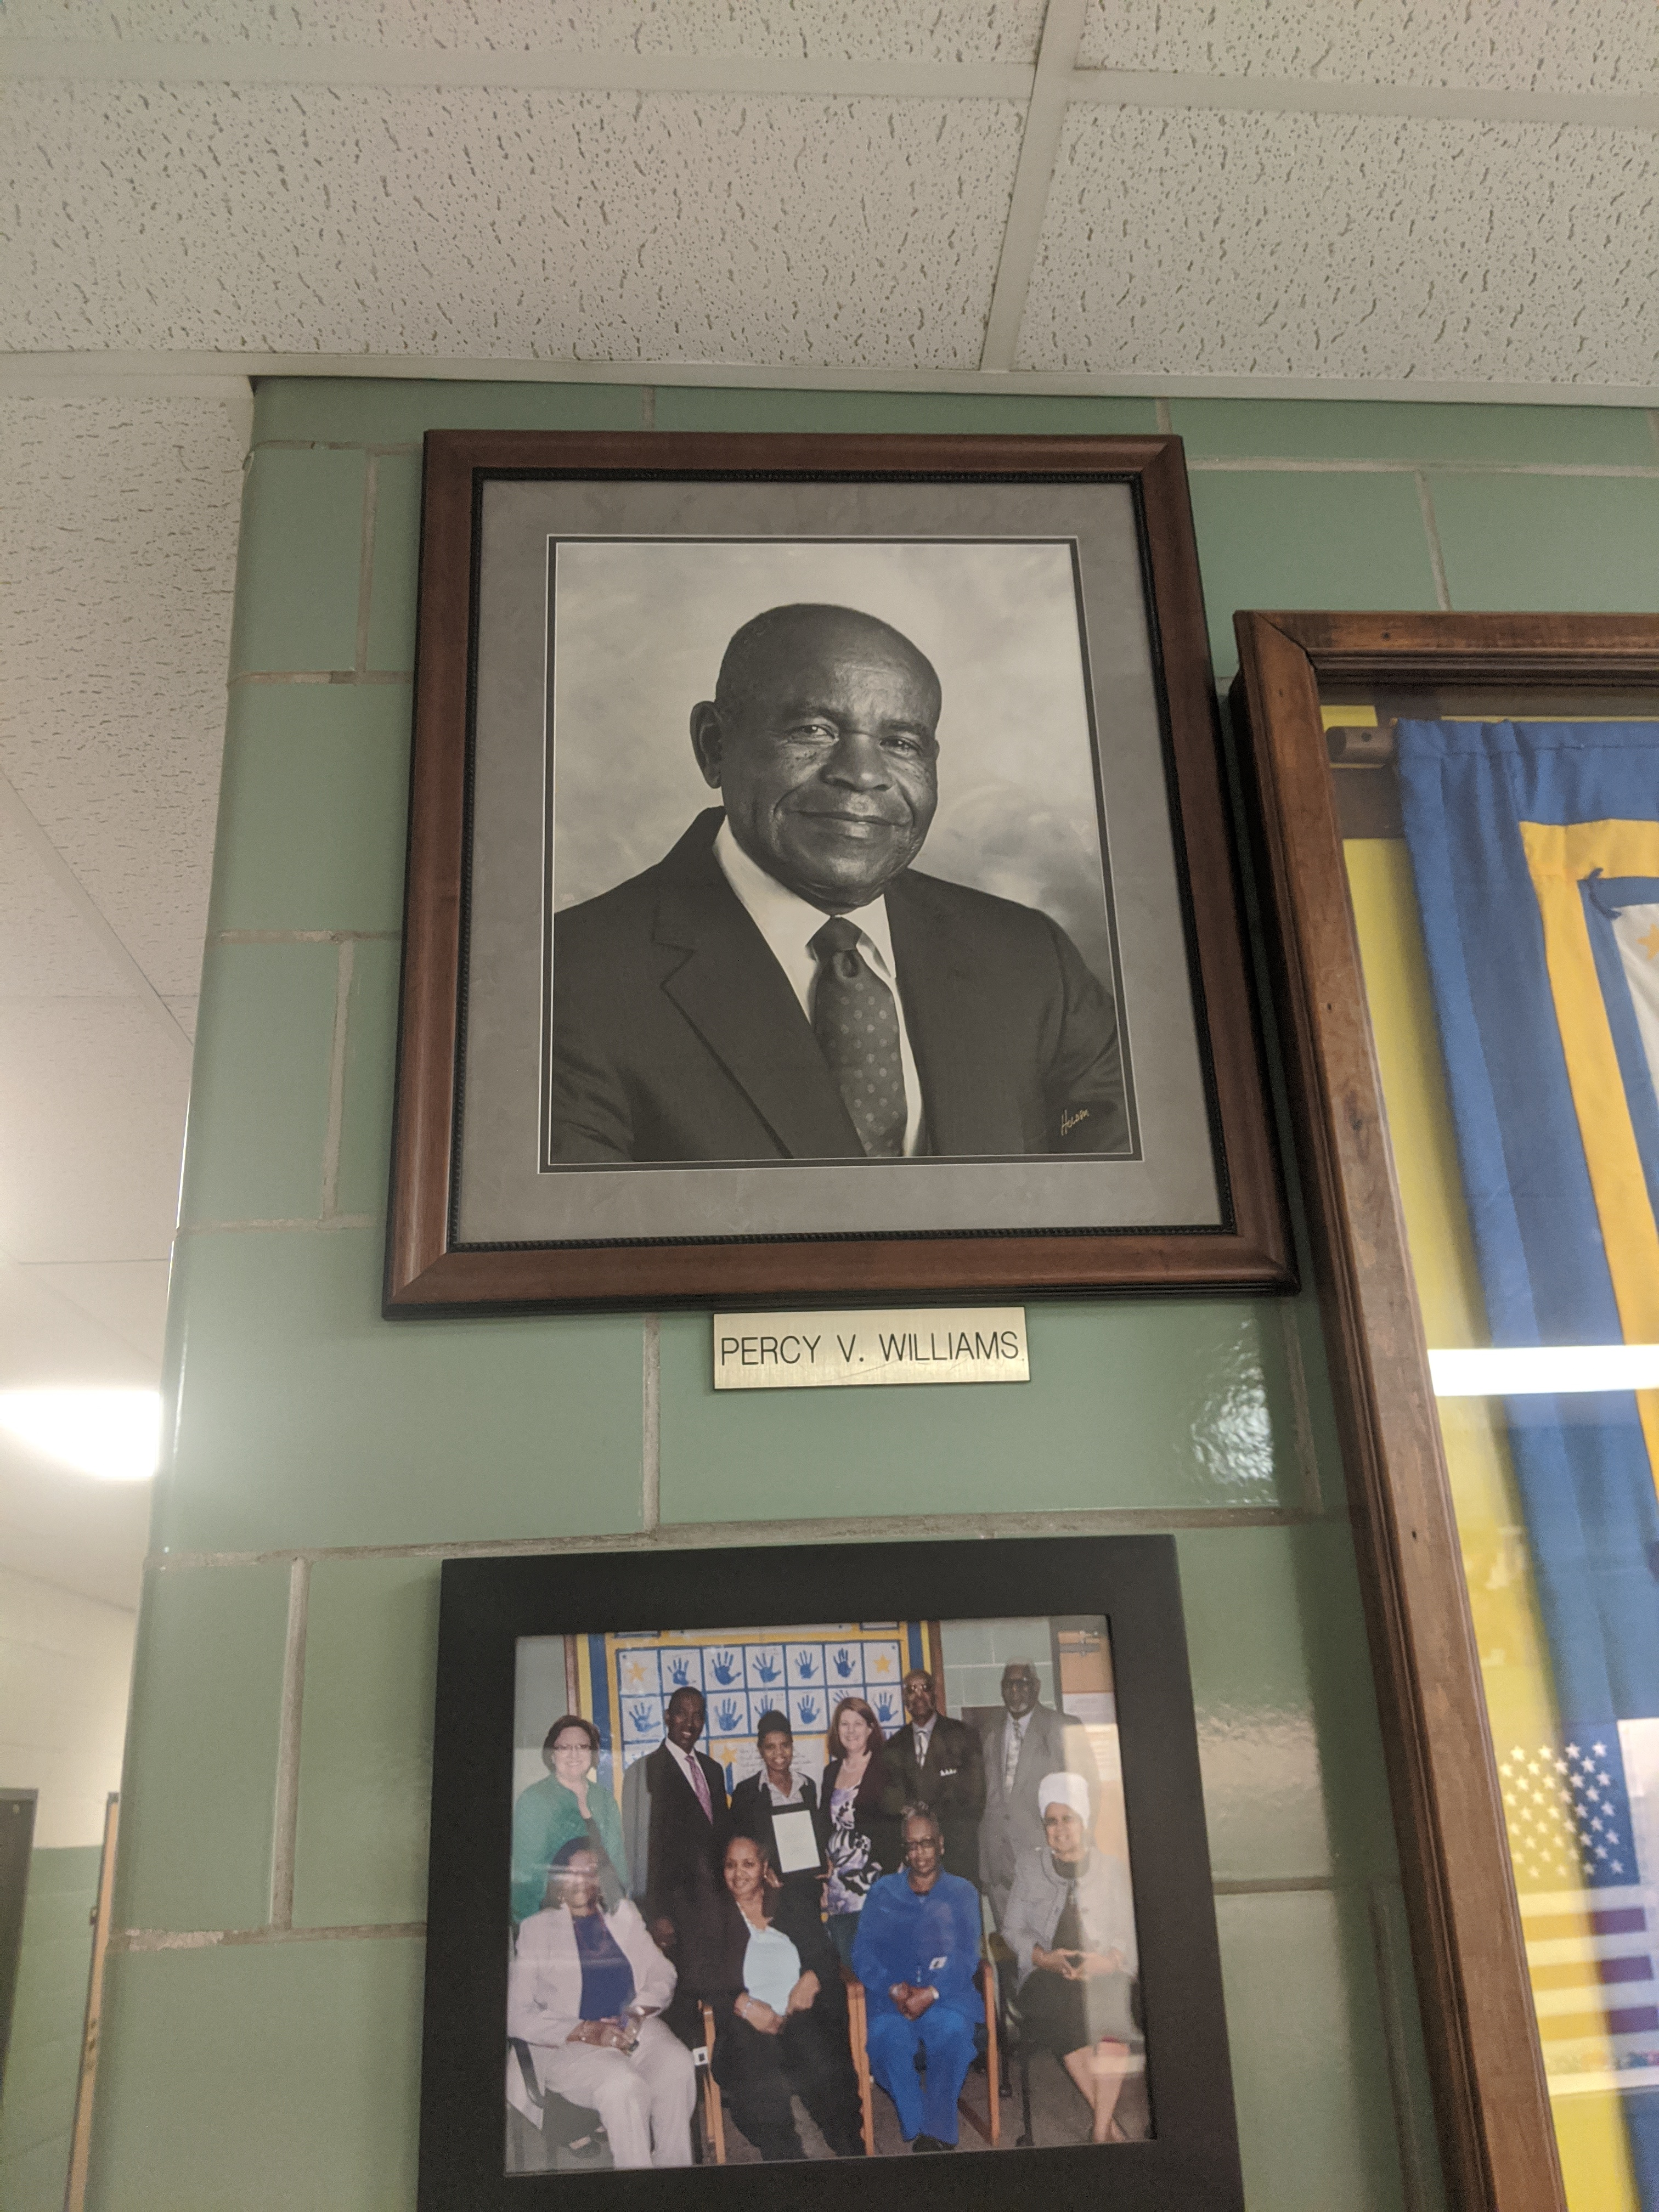 Portrait of Percy Williams currently hanging in the school.